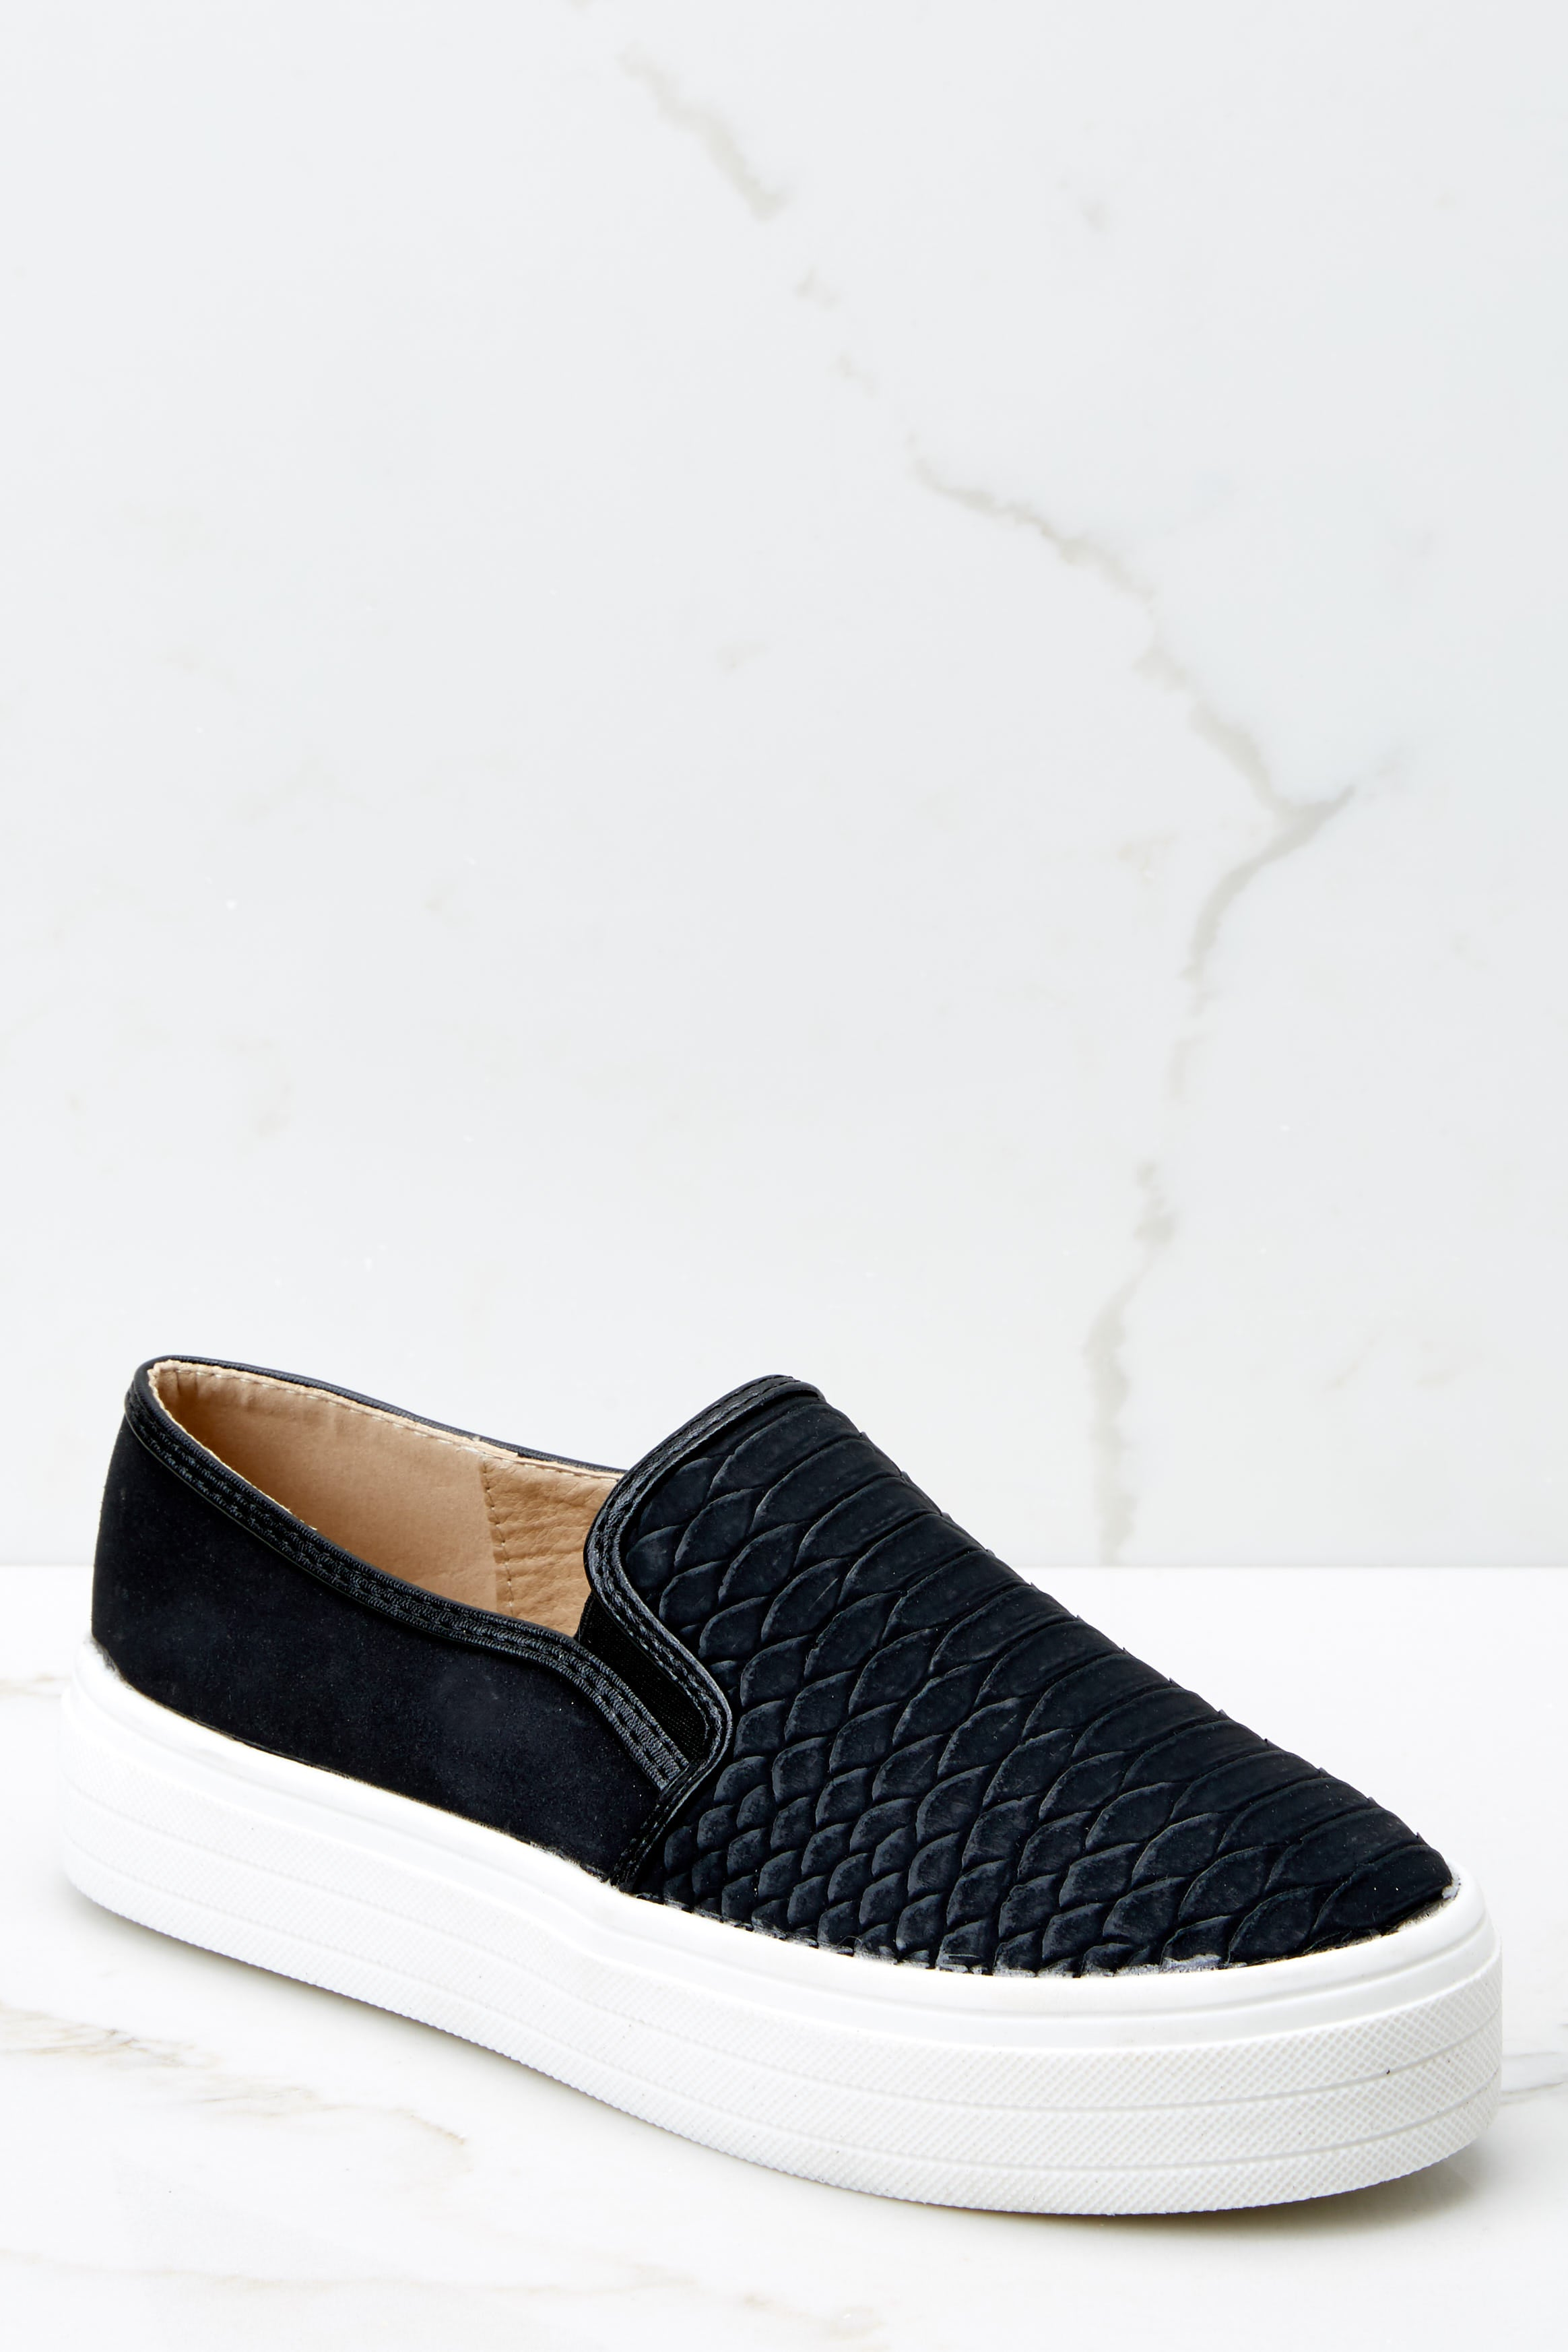 1 Into High Gear Black Slip On Sneakers at reddressboutique.com